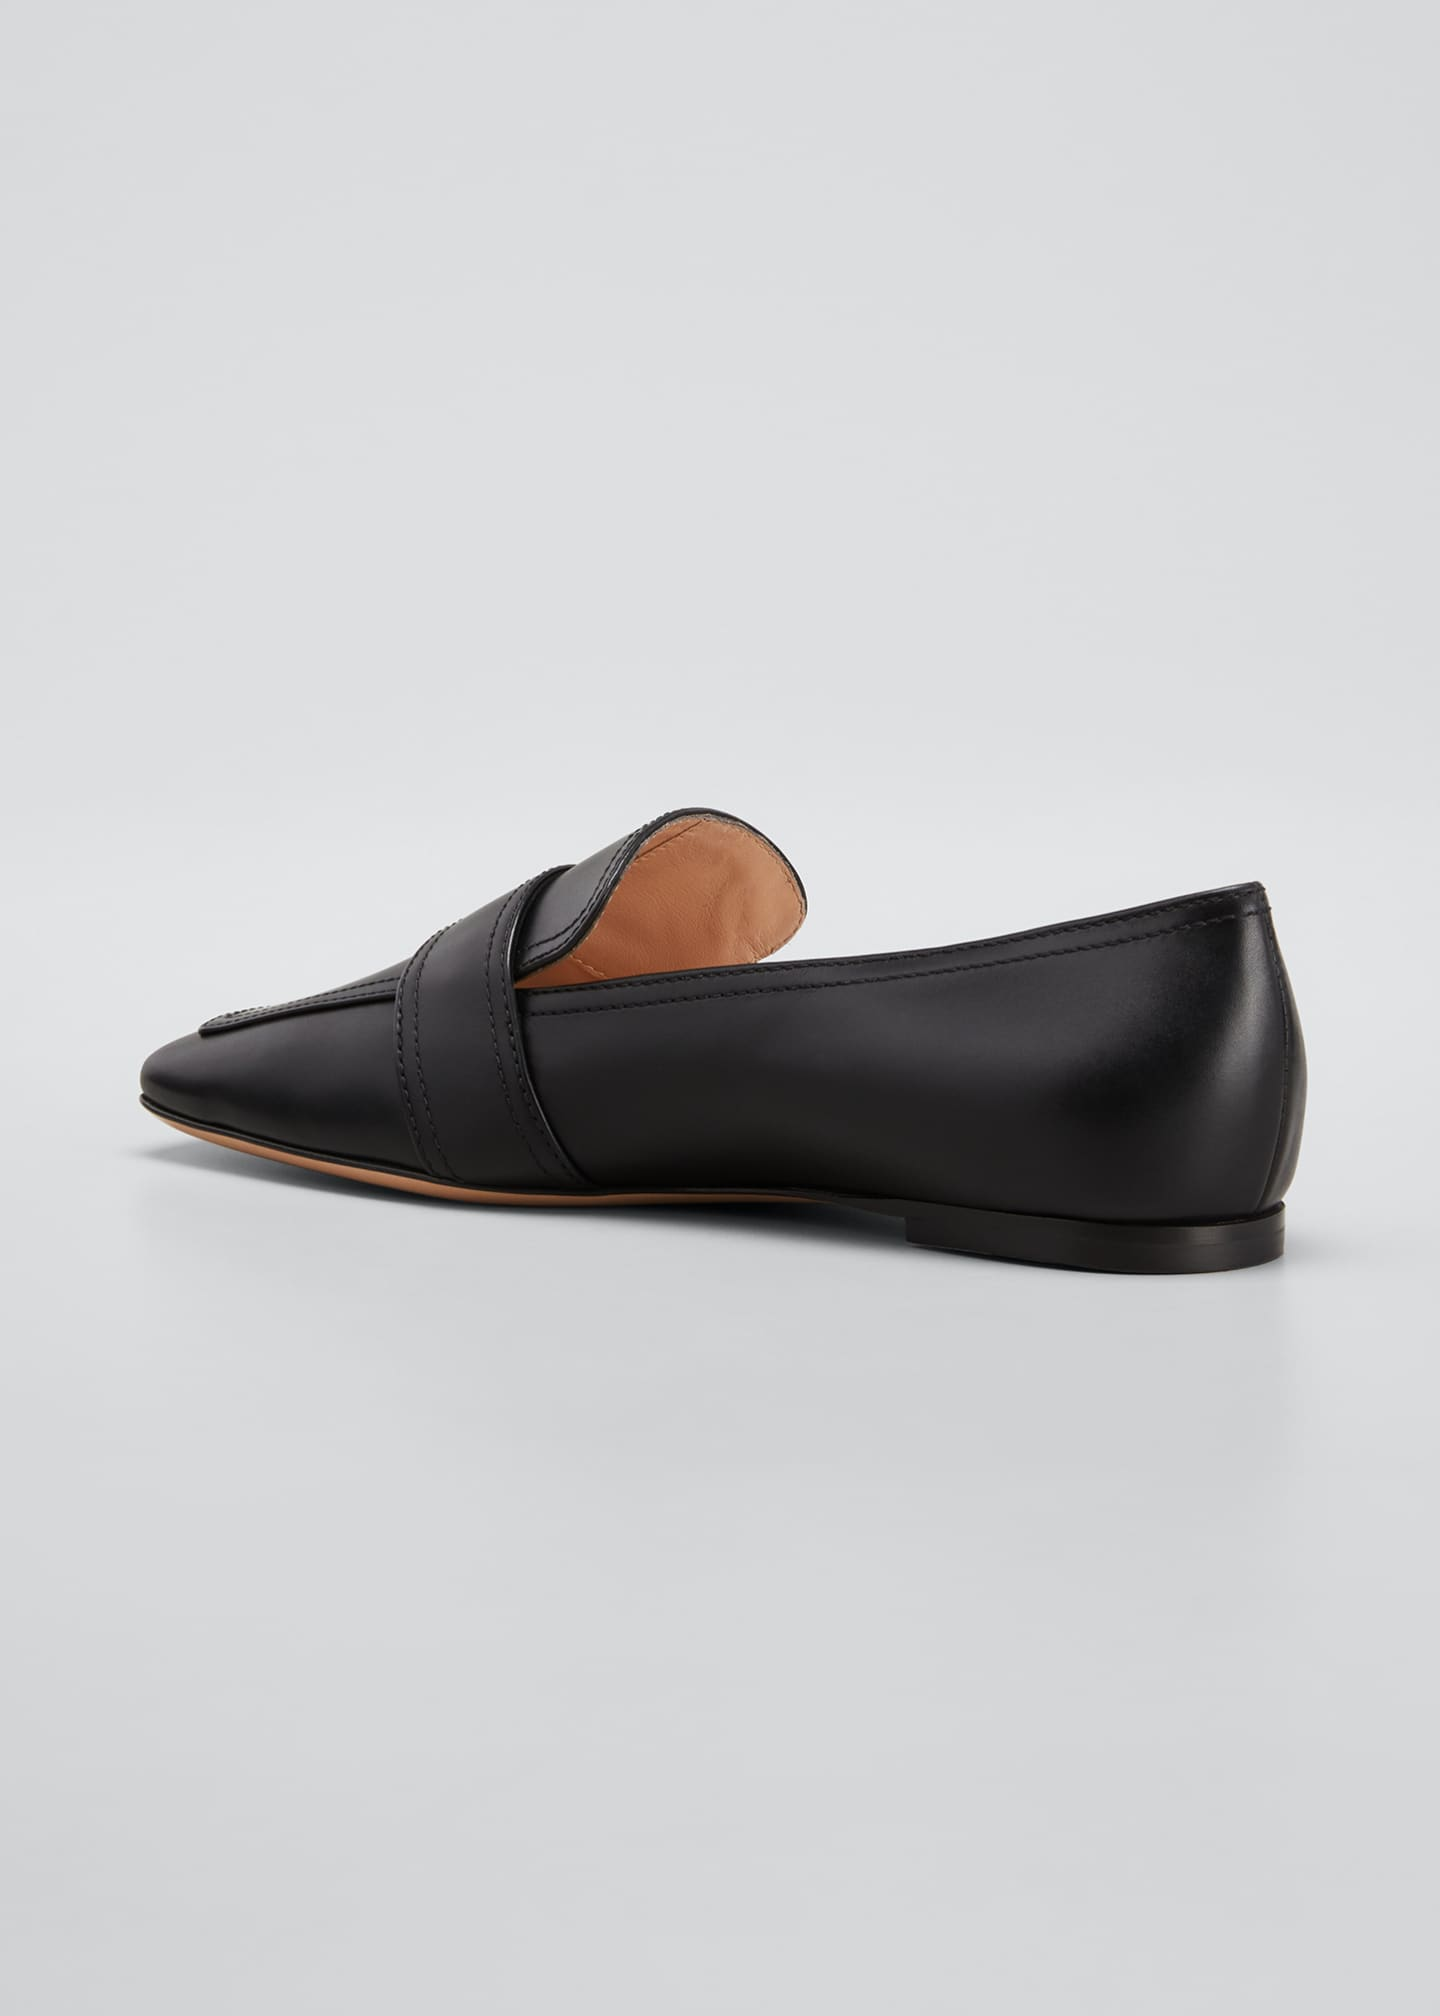 Image 4 of 5: 5mm Flat Square-Toe Leather Loafers